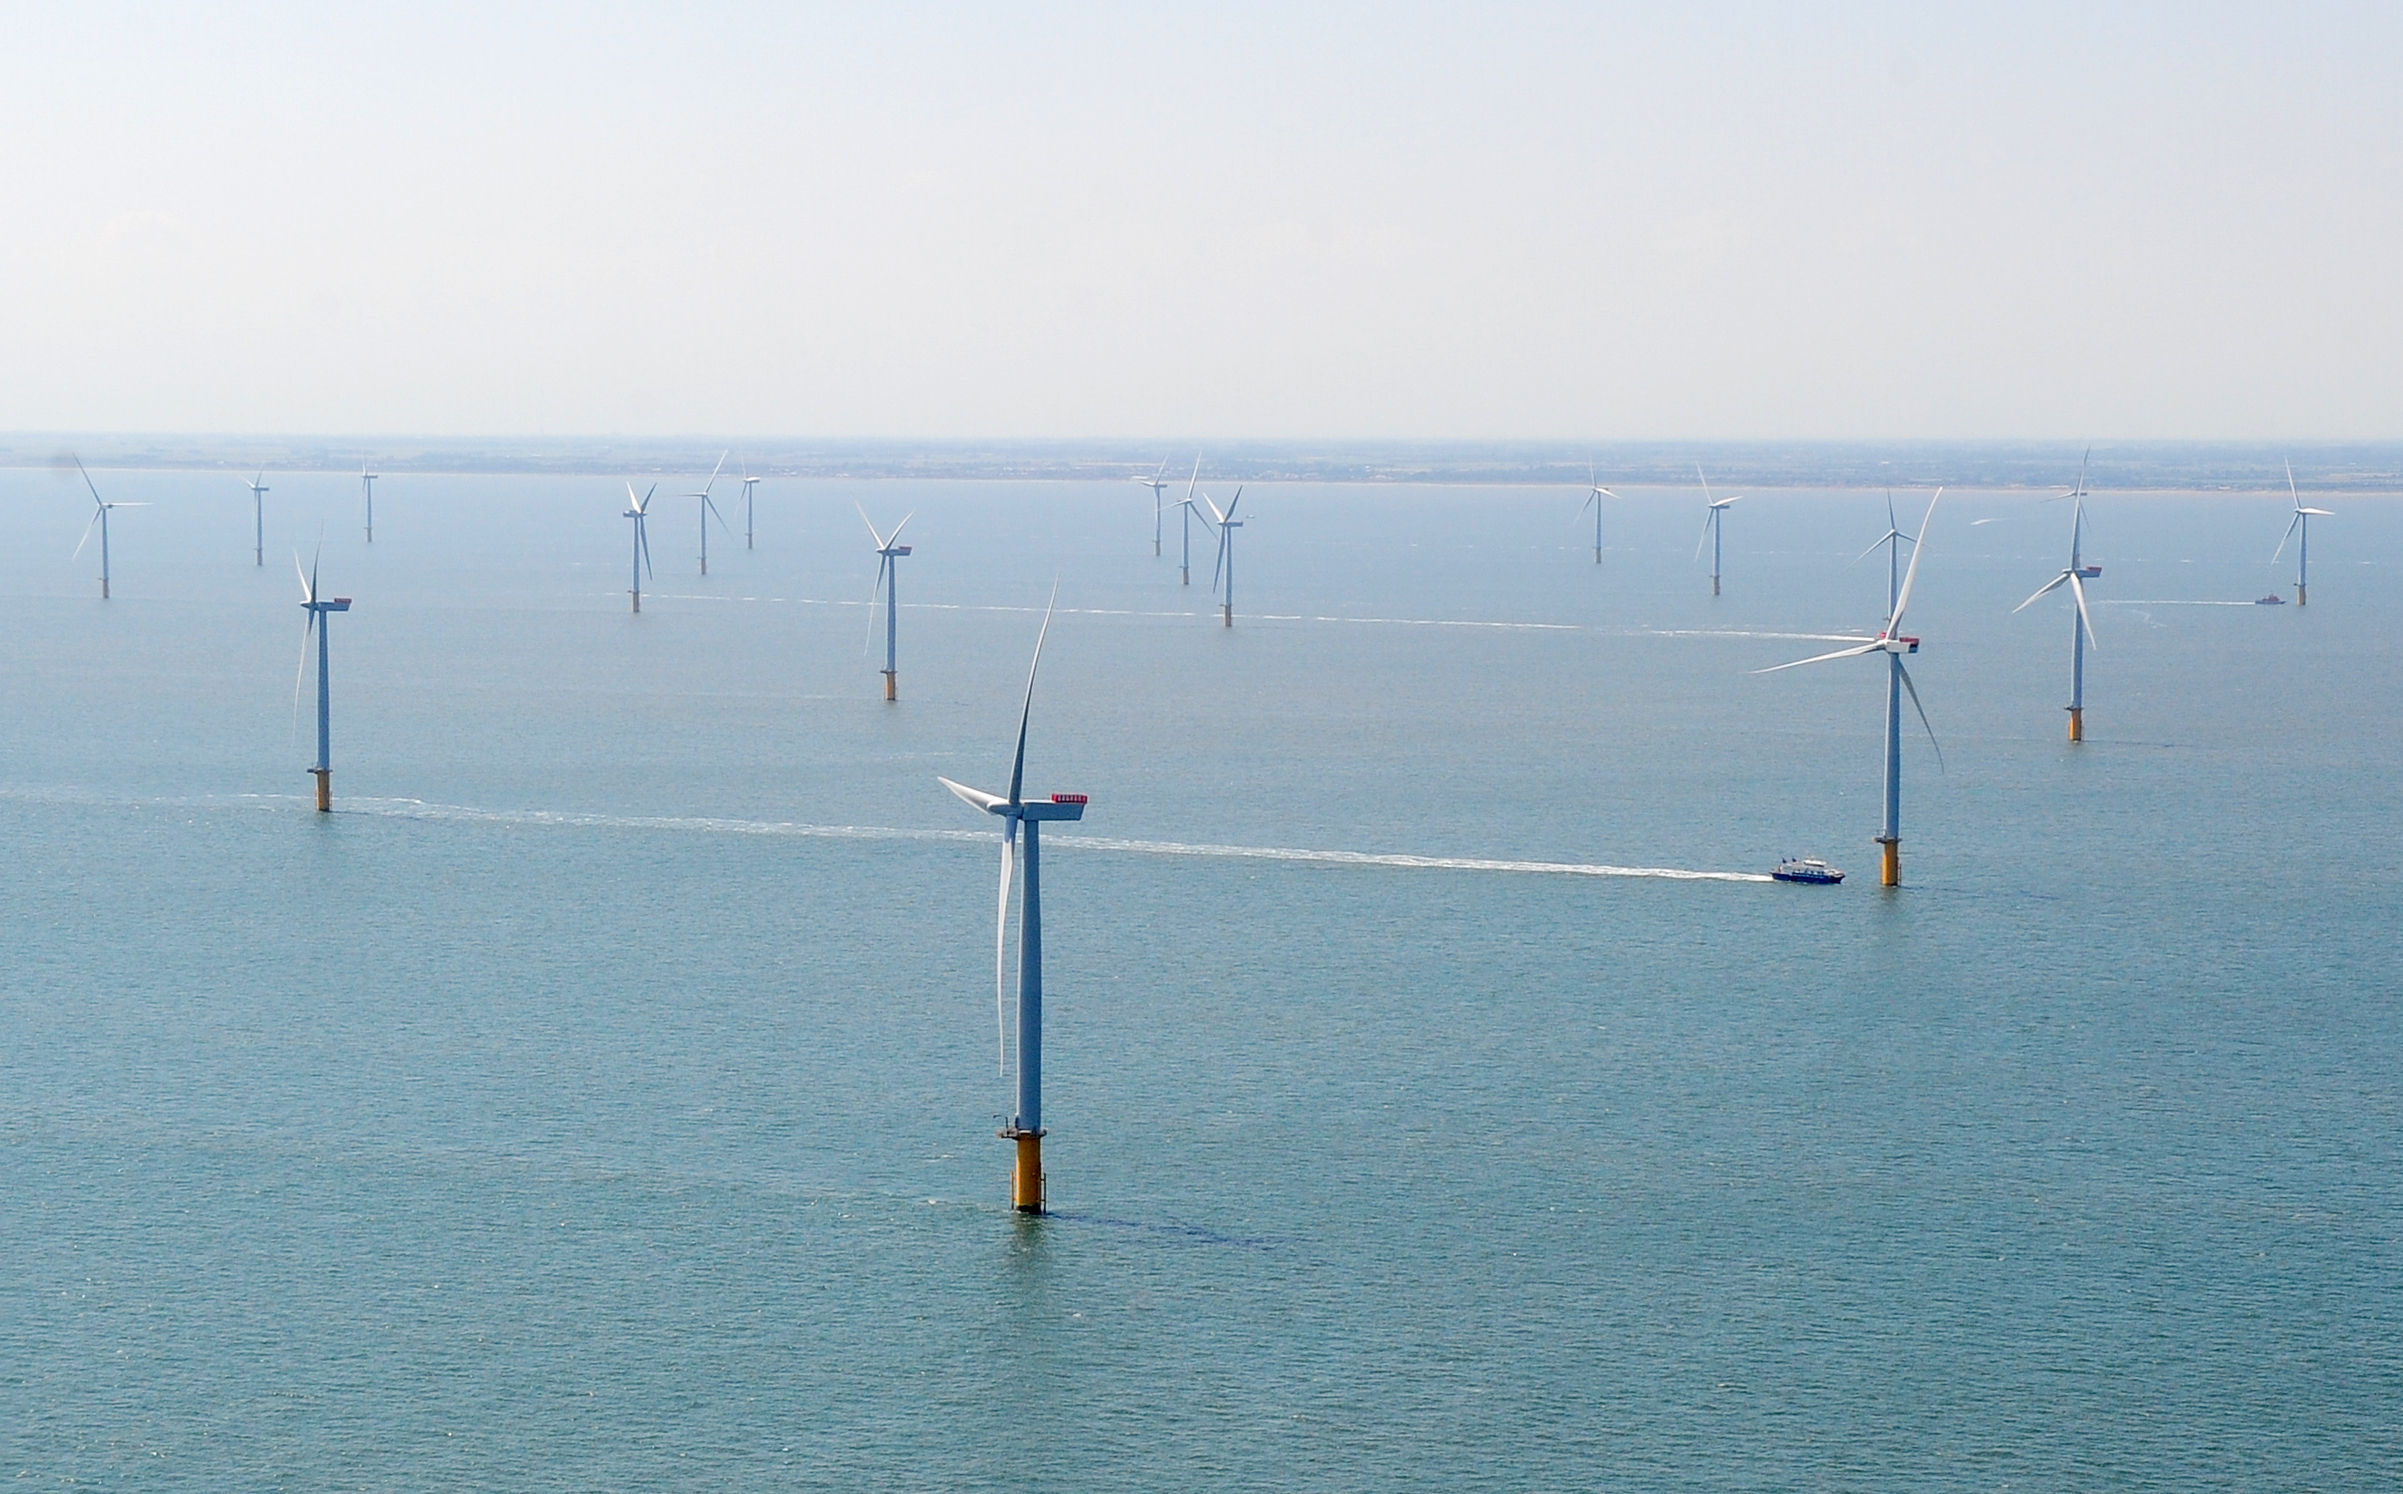 aerial view showing the new Centrica Energy Lincs offshore wind farm off the Lincolnshire coast.